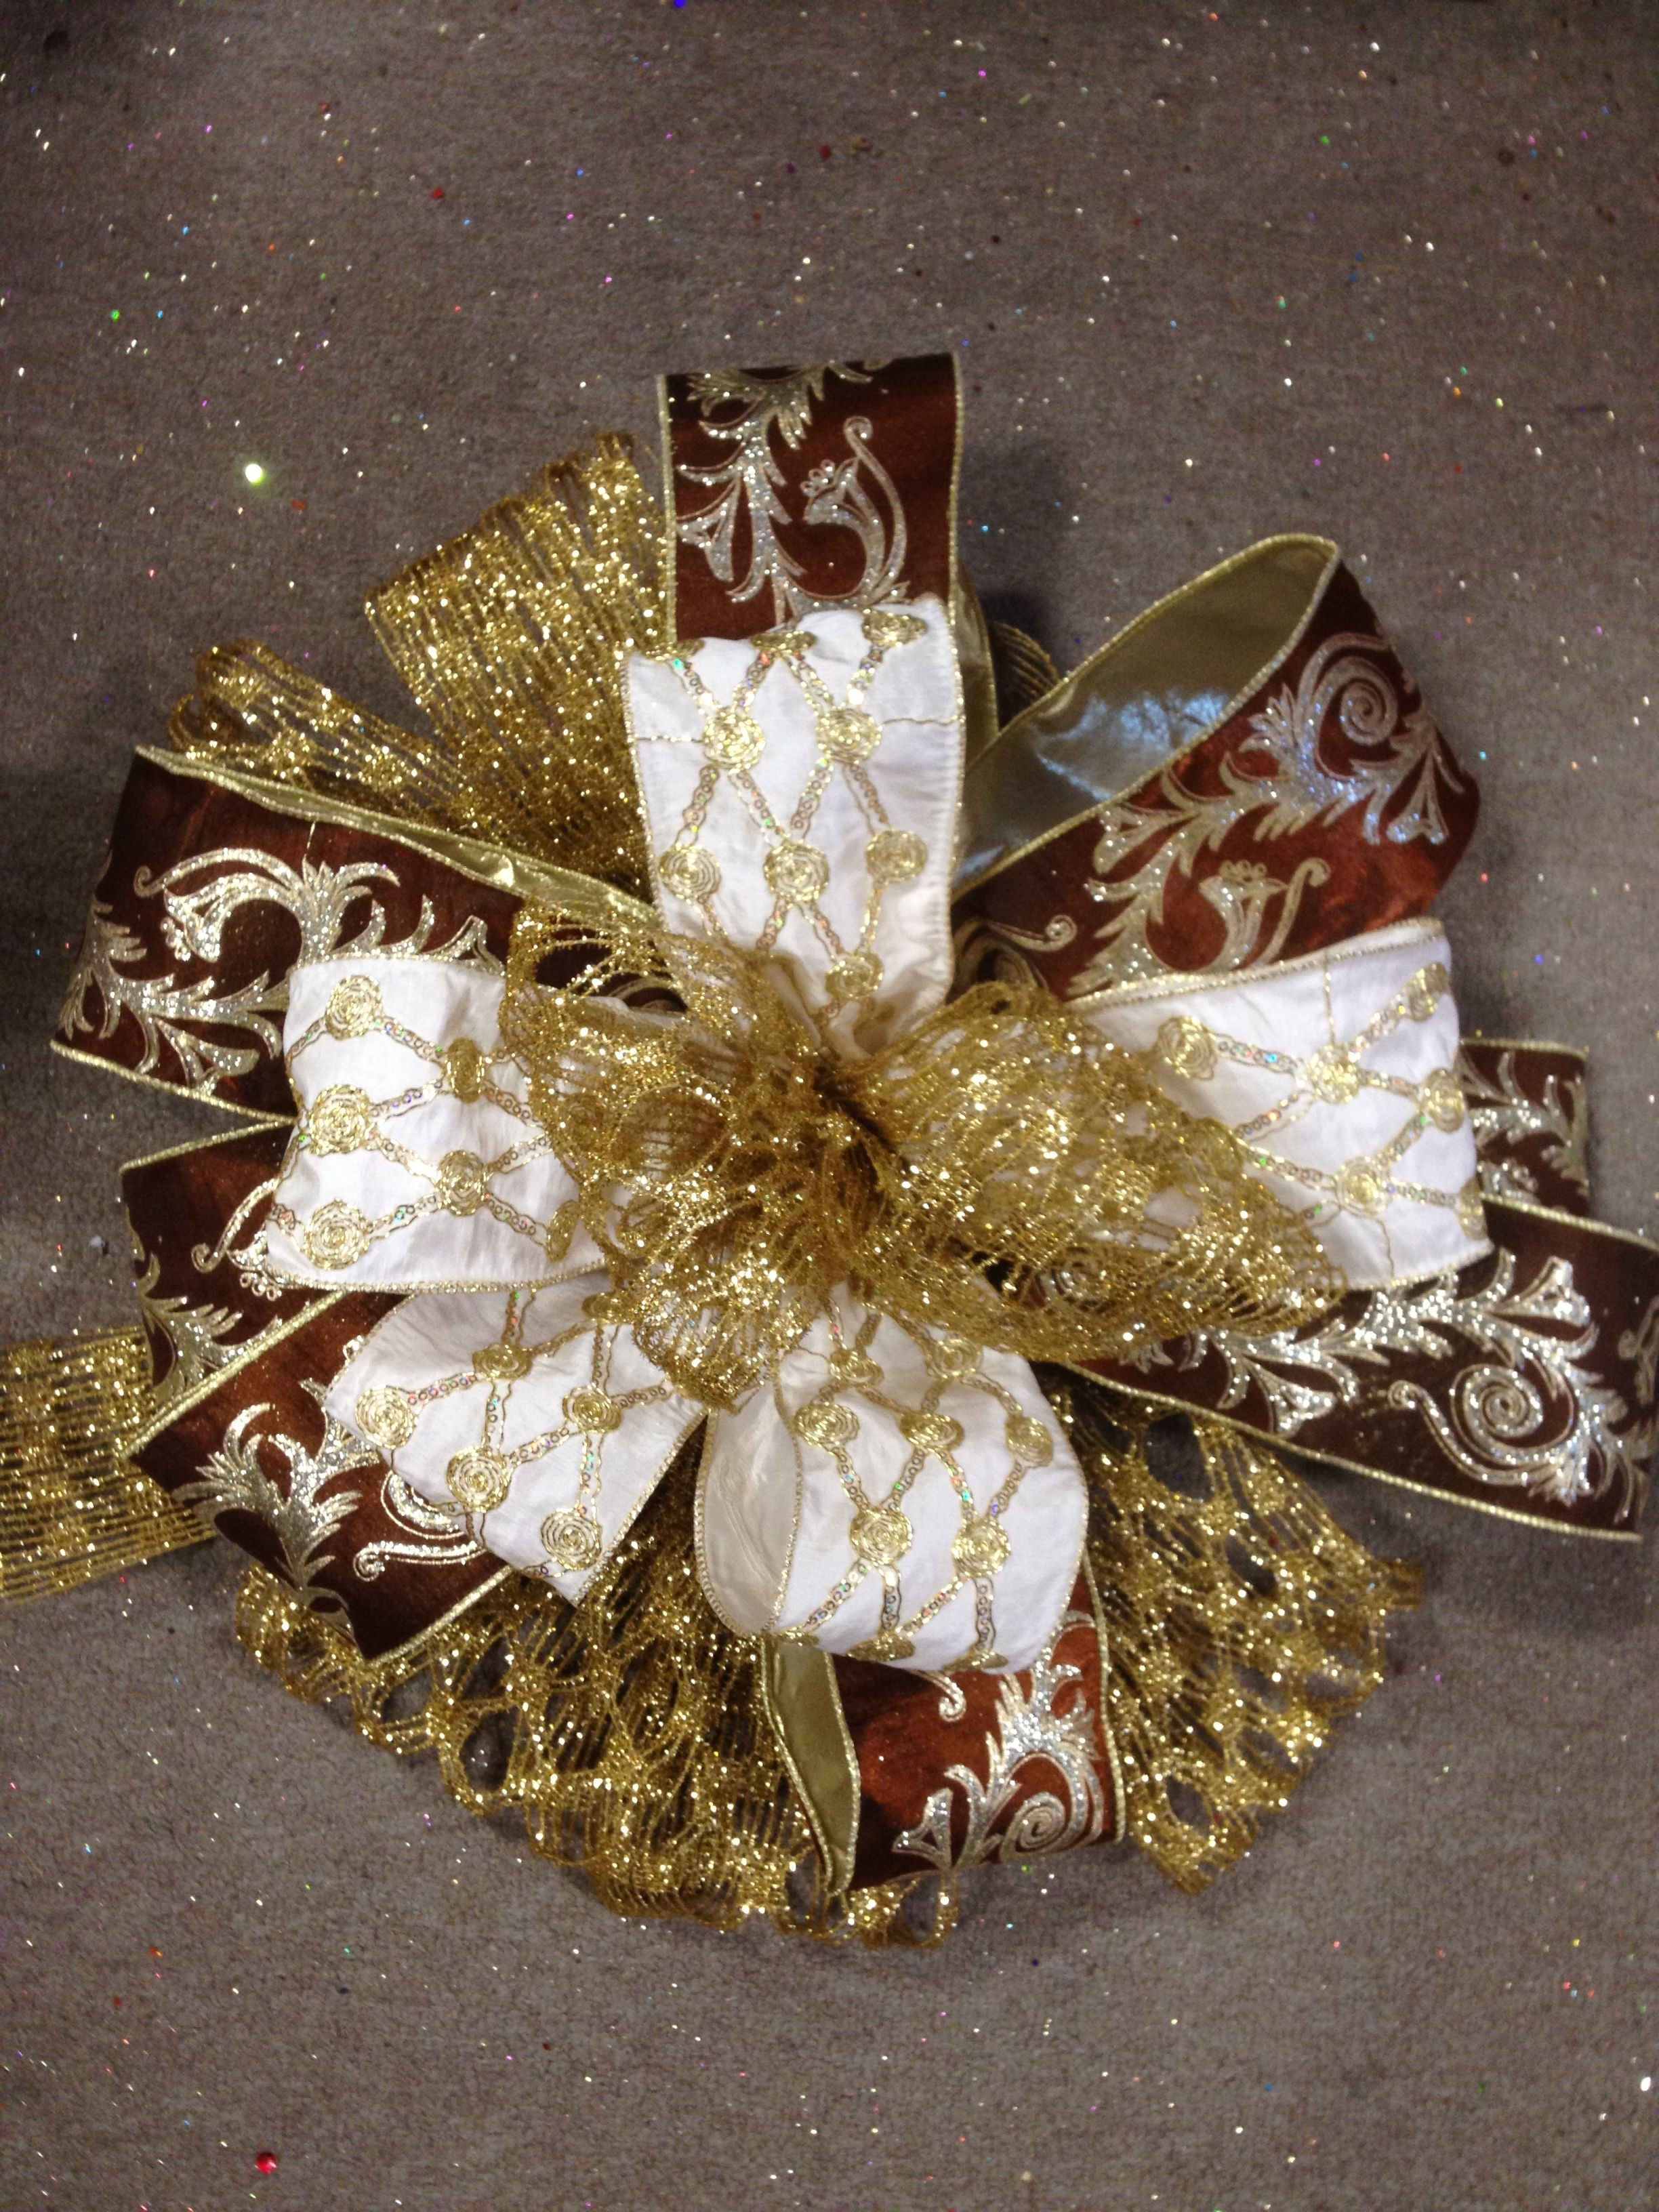 ... by Arcadia Floral & Home Decor - Houston TX on Christmas Tree Dec